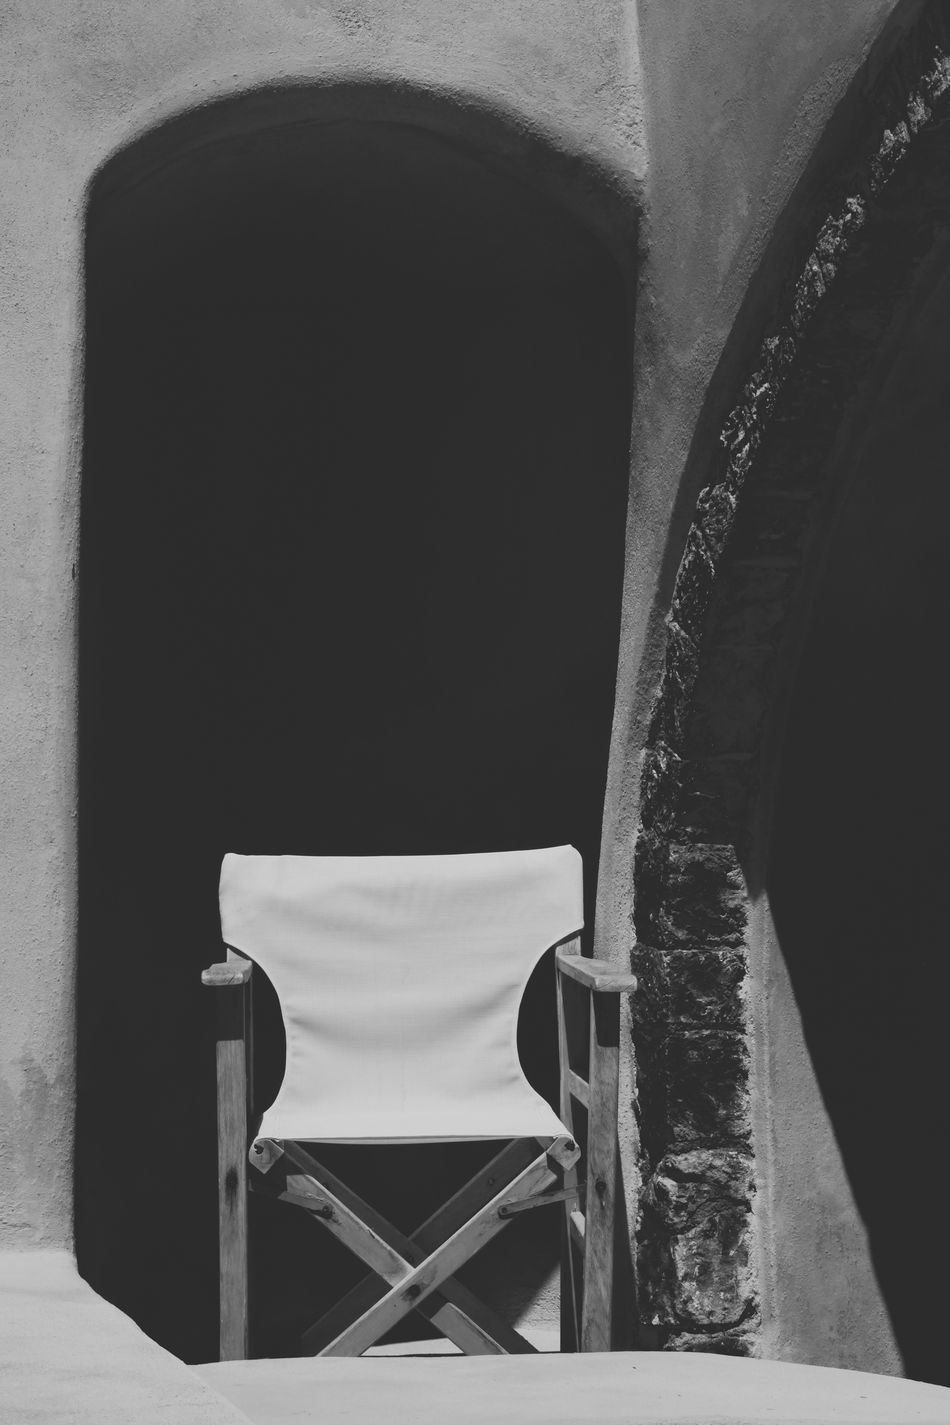 Abandoned Absence And Action! Black & White Black And White Black And White Photography Blackandwhite Blackandwhite Photography Chair Full Frame Relaxation Santorini Shadow Single Object Sunny Day Vacation Wall The Essence Of Summer Monochrome Photography